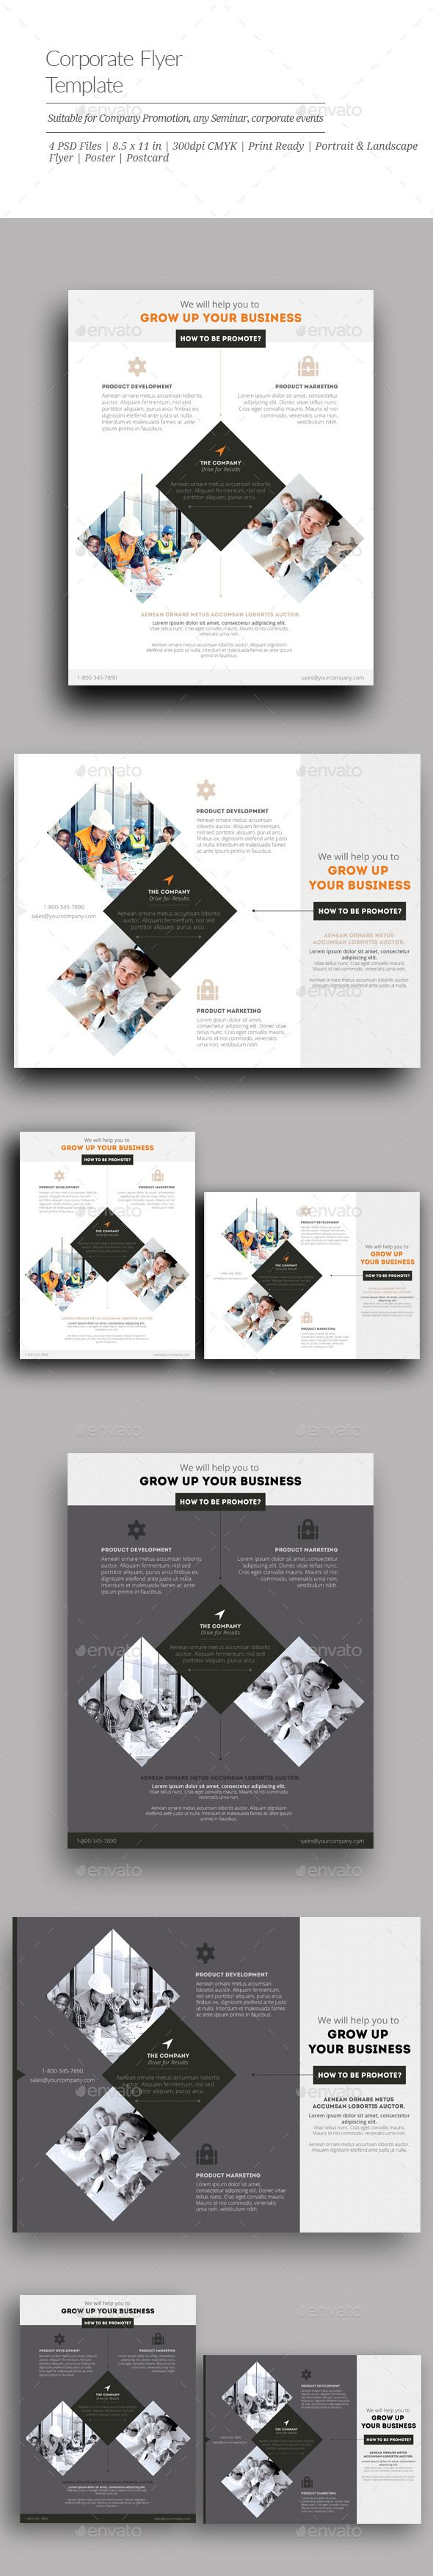 Amazing Custom Flyer Template 10 Best Corporate Flyers